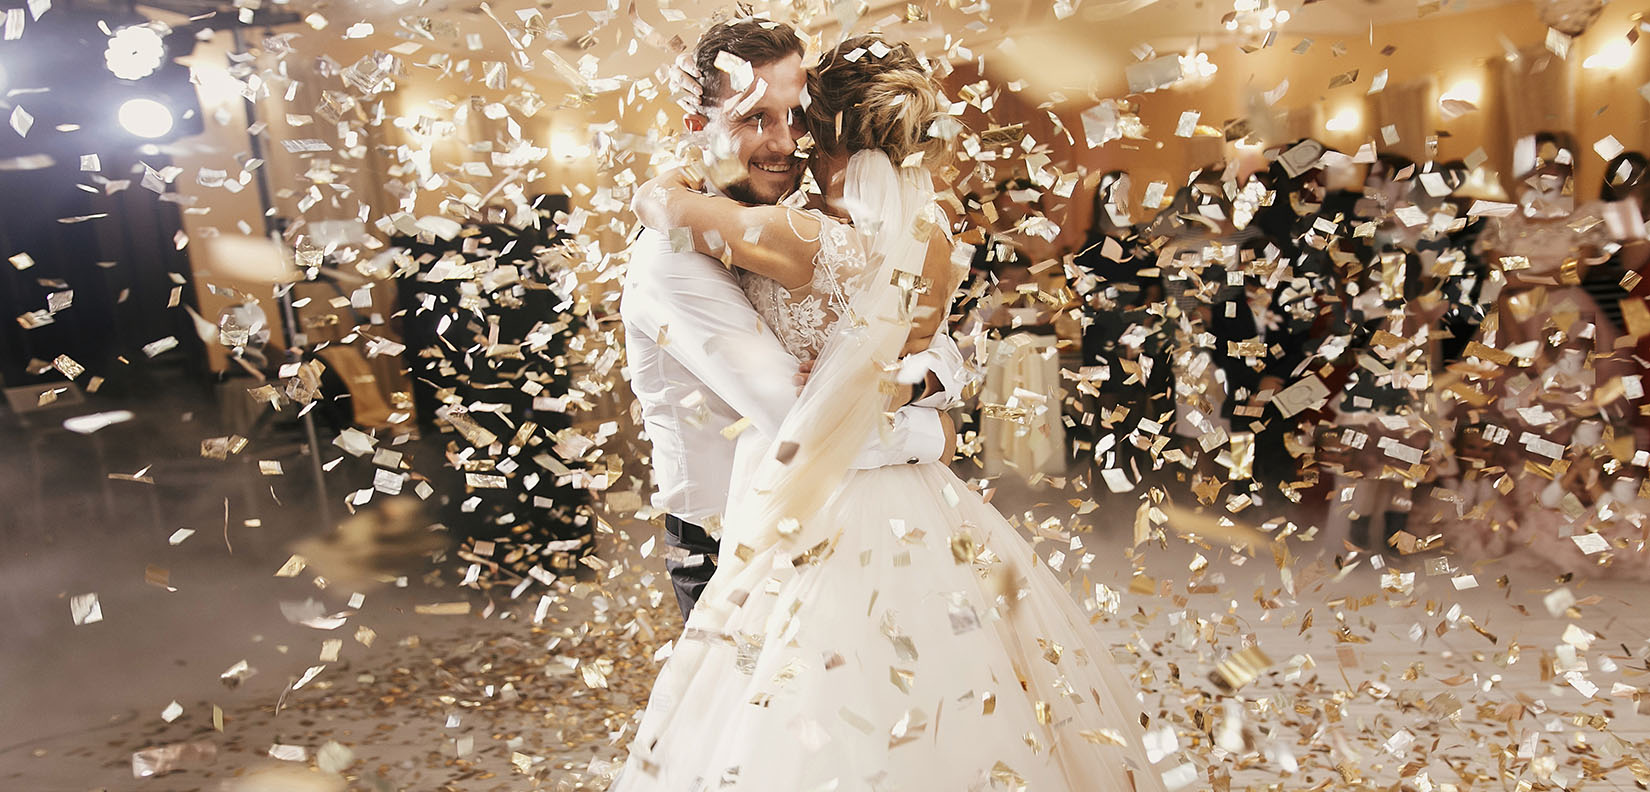 bride and groom dancing in confetti